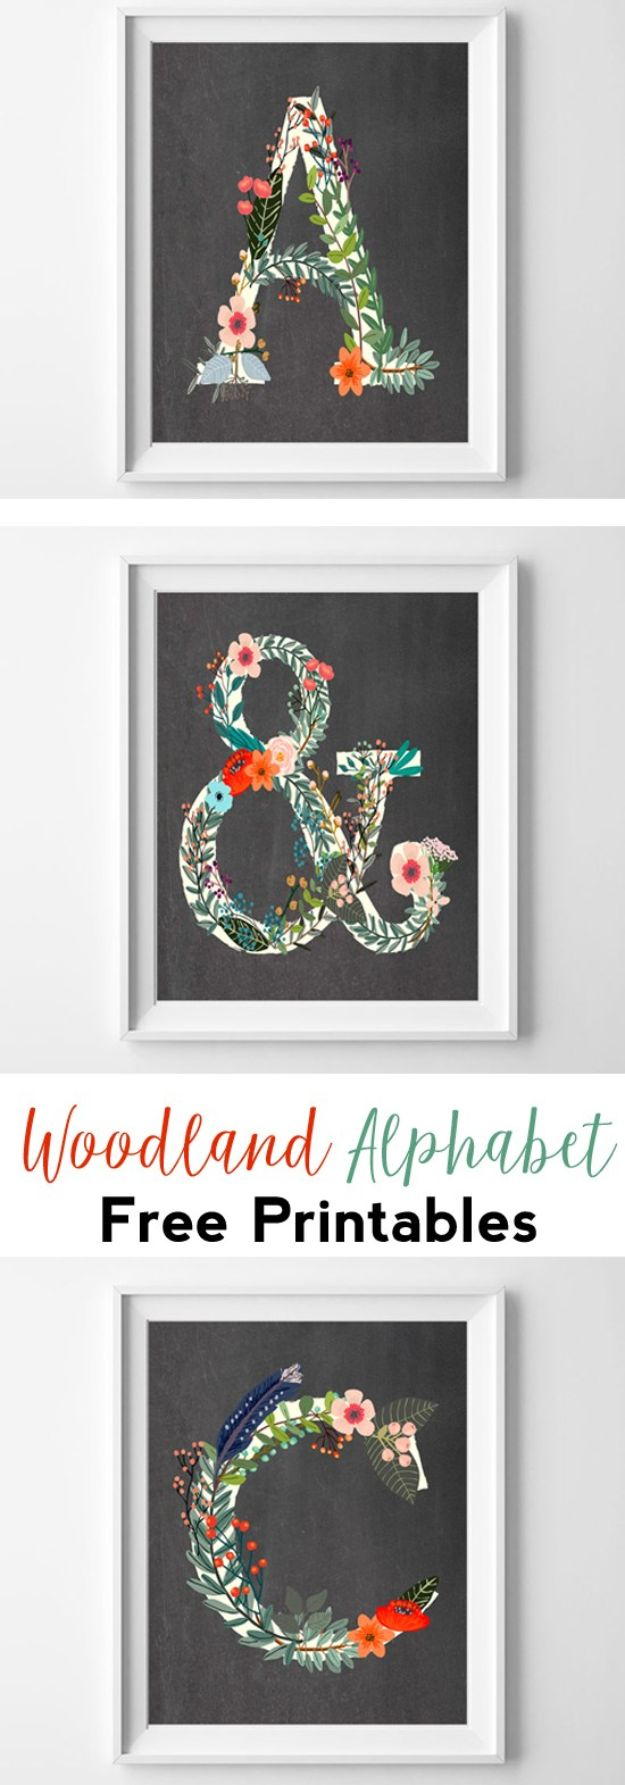 DIY Nursery Decor - Woodland Alphabet Free Printables - Easy Projects to Make for Baby Room - Decorations for Boy and Girl Rooms, Unisex, Minimalist and Modern Nurseries and Rustic, Farmhouse Style - All White, Pink, Blue, Yellow and Green - Cribs, Bedding, Wall Art and Hangings, Rocking Chairs, Pillows, Changing Tables, Storage and Bassinet for Baby http://diyjoy.com/diy-nursery-decor